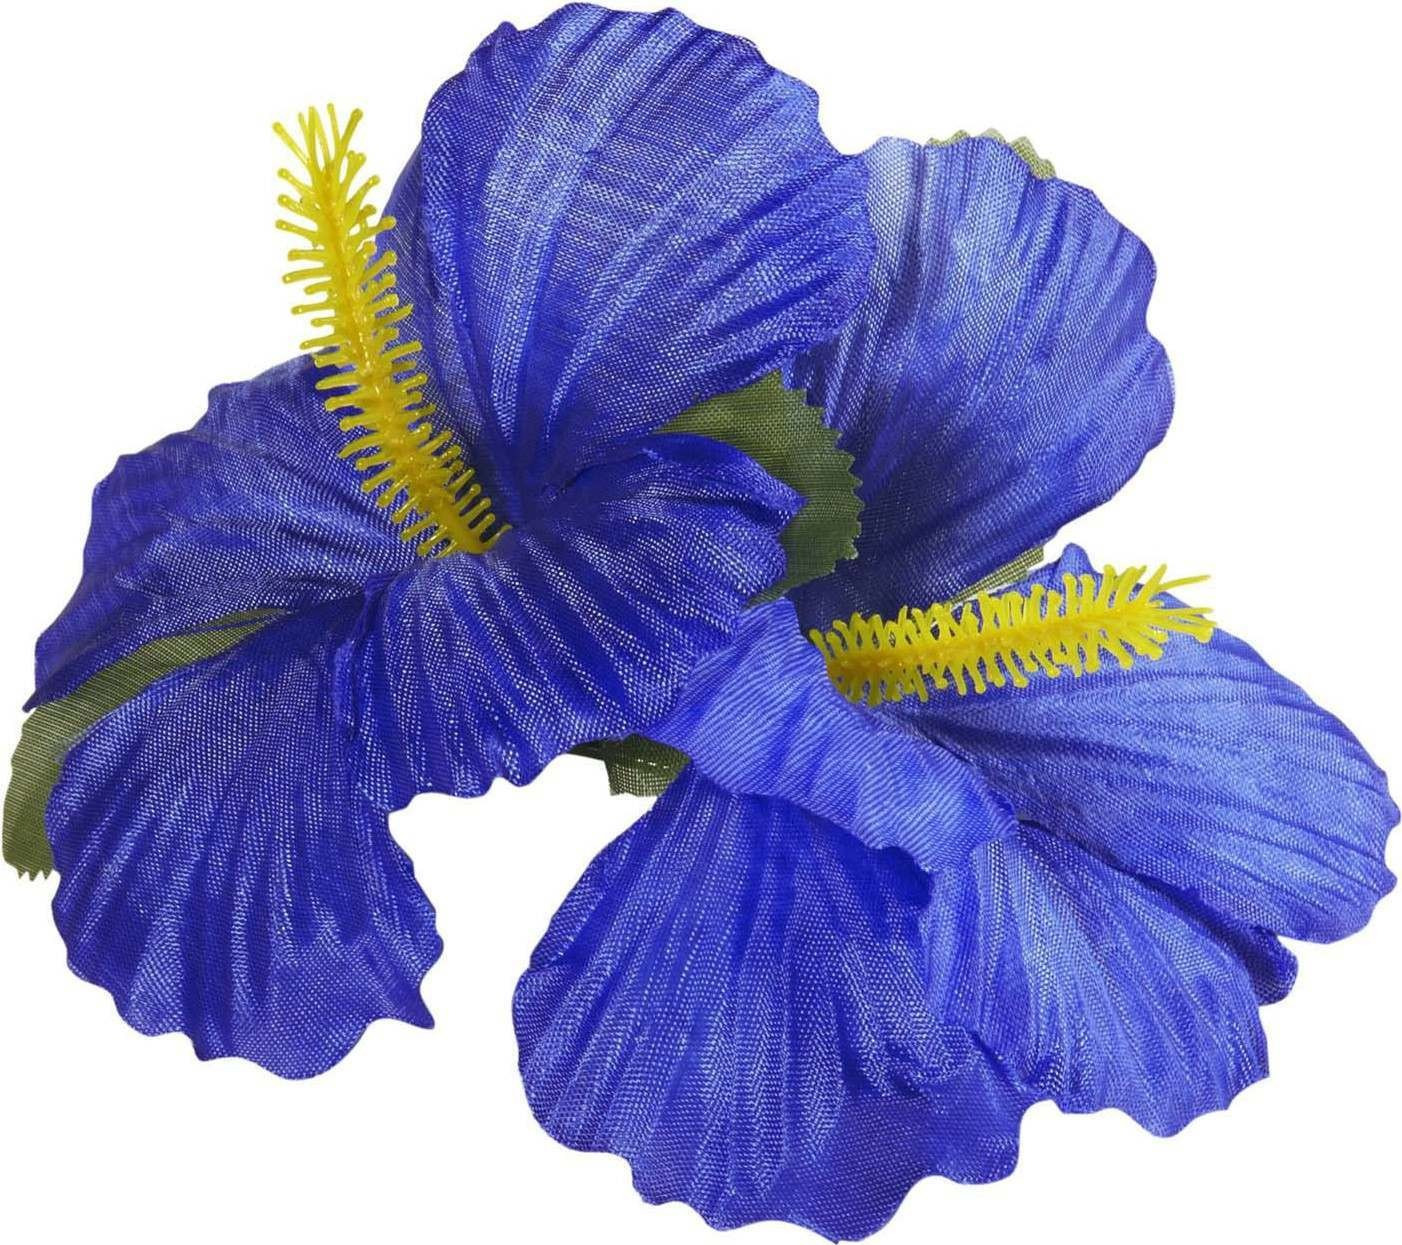 Buy ladies 2 blue hibiscus flowers hair clips accessories blue ladies 2 blue hibiscus flowers hair clips accessories blue izmirmasajfo